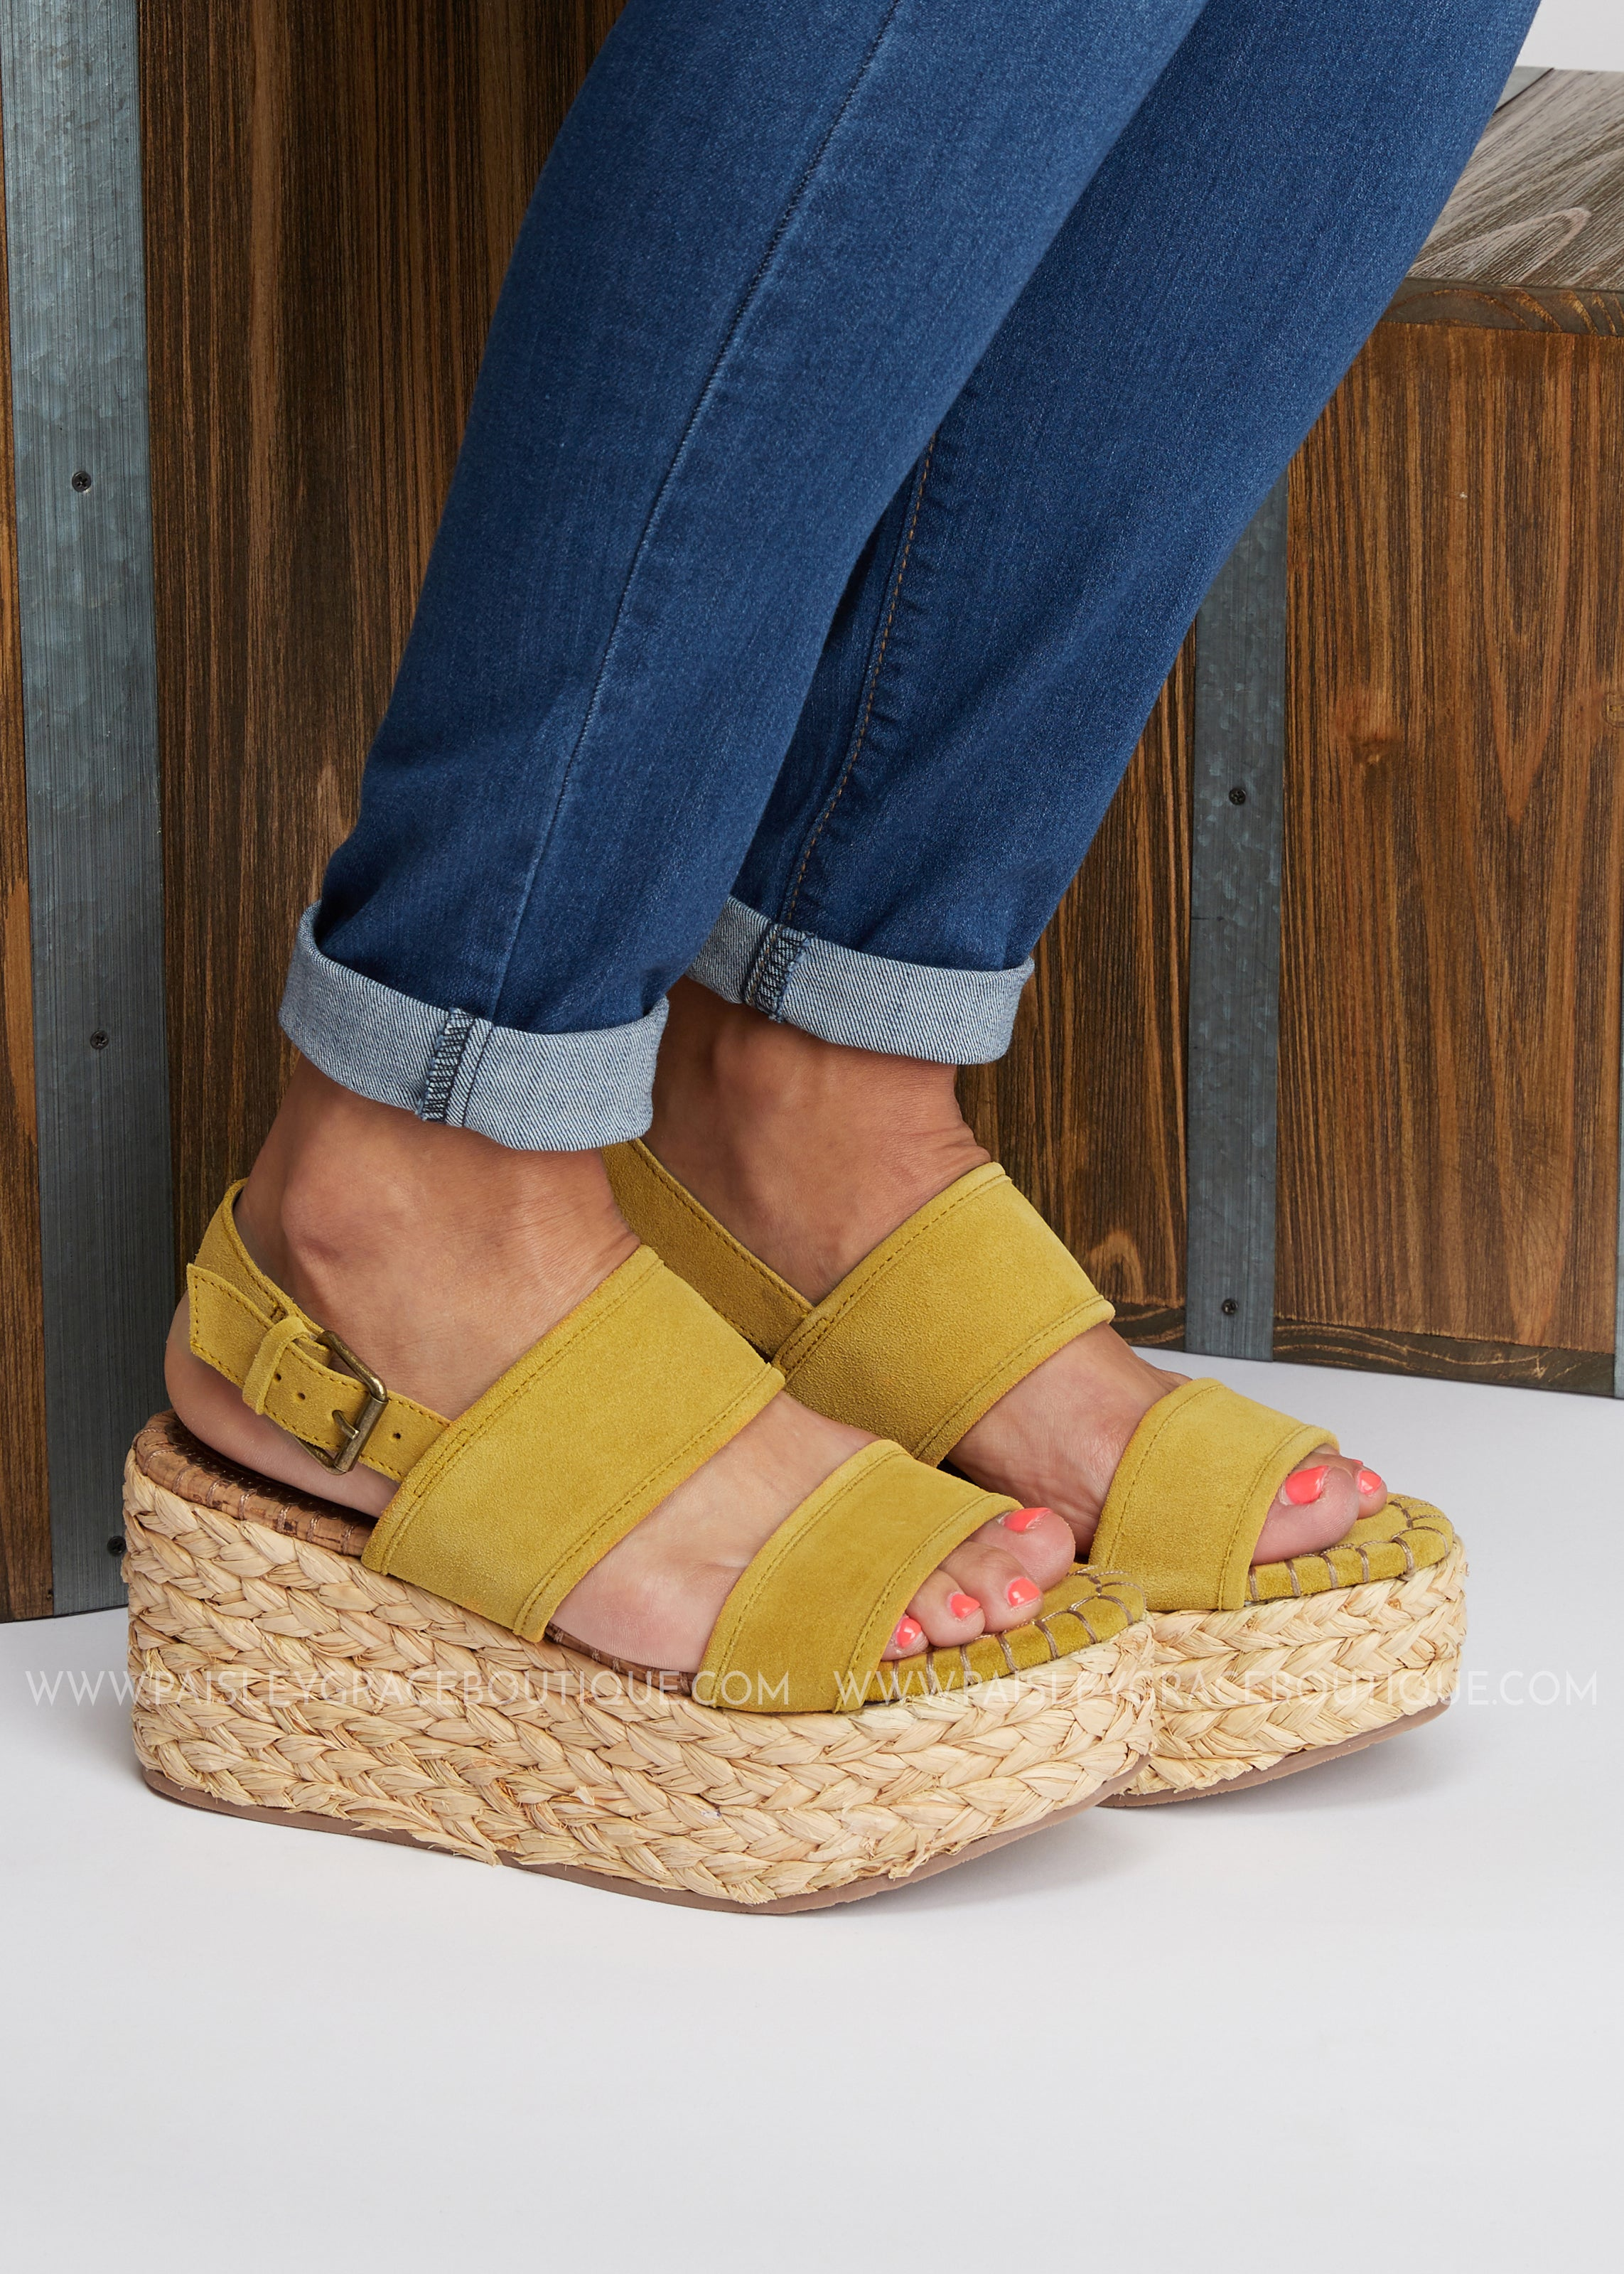 Woven Luv Espadrille Wedge